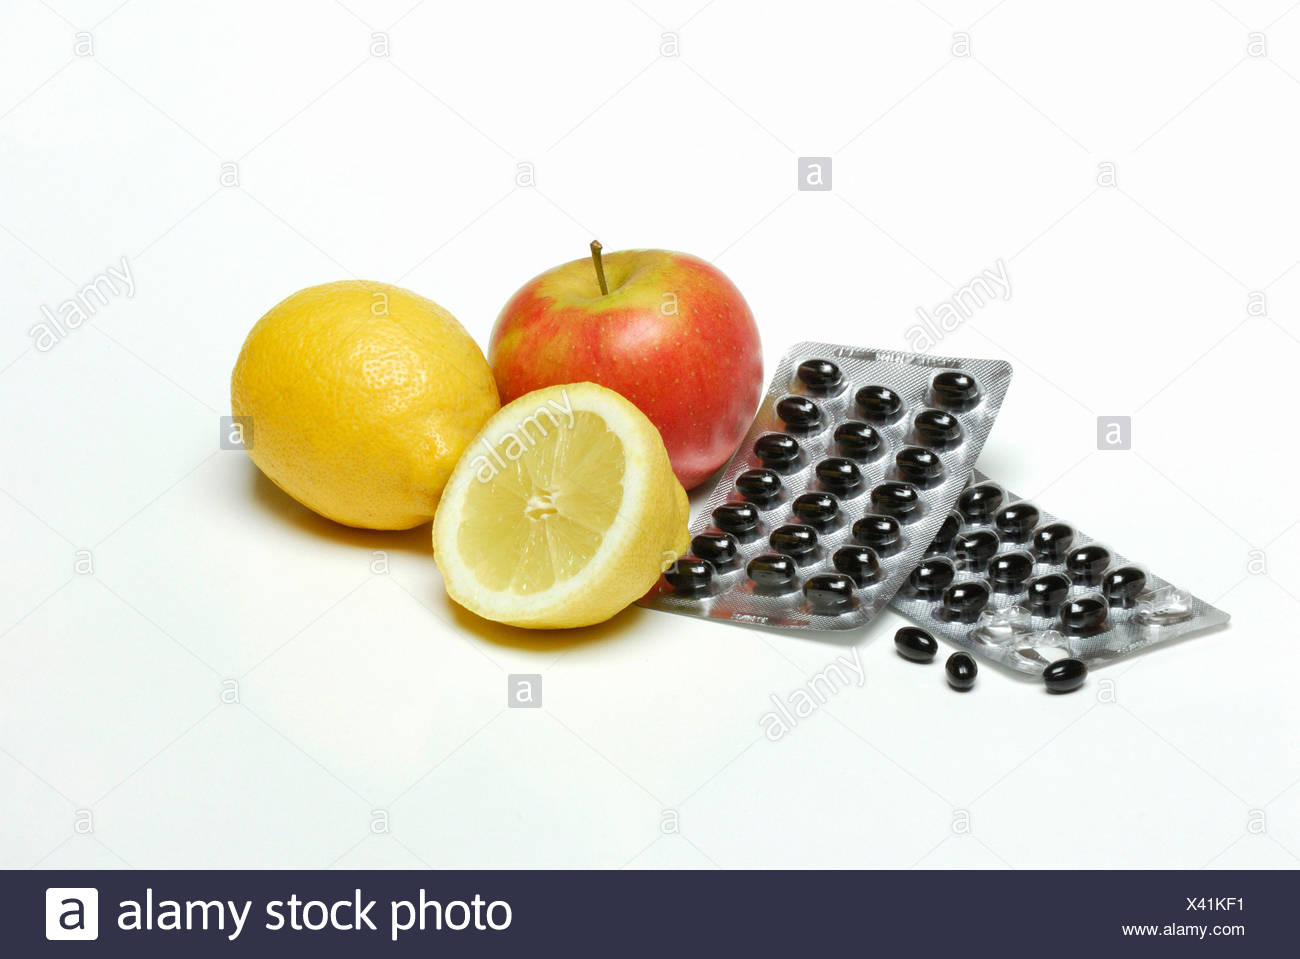 Fruit and nutritional supplement - Stock Image